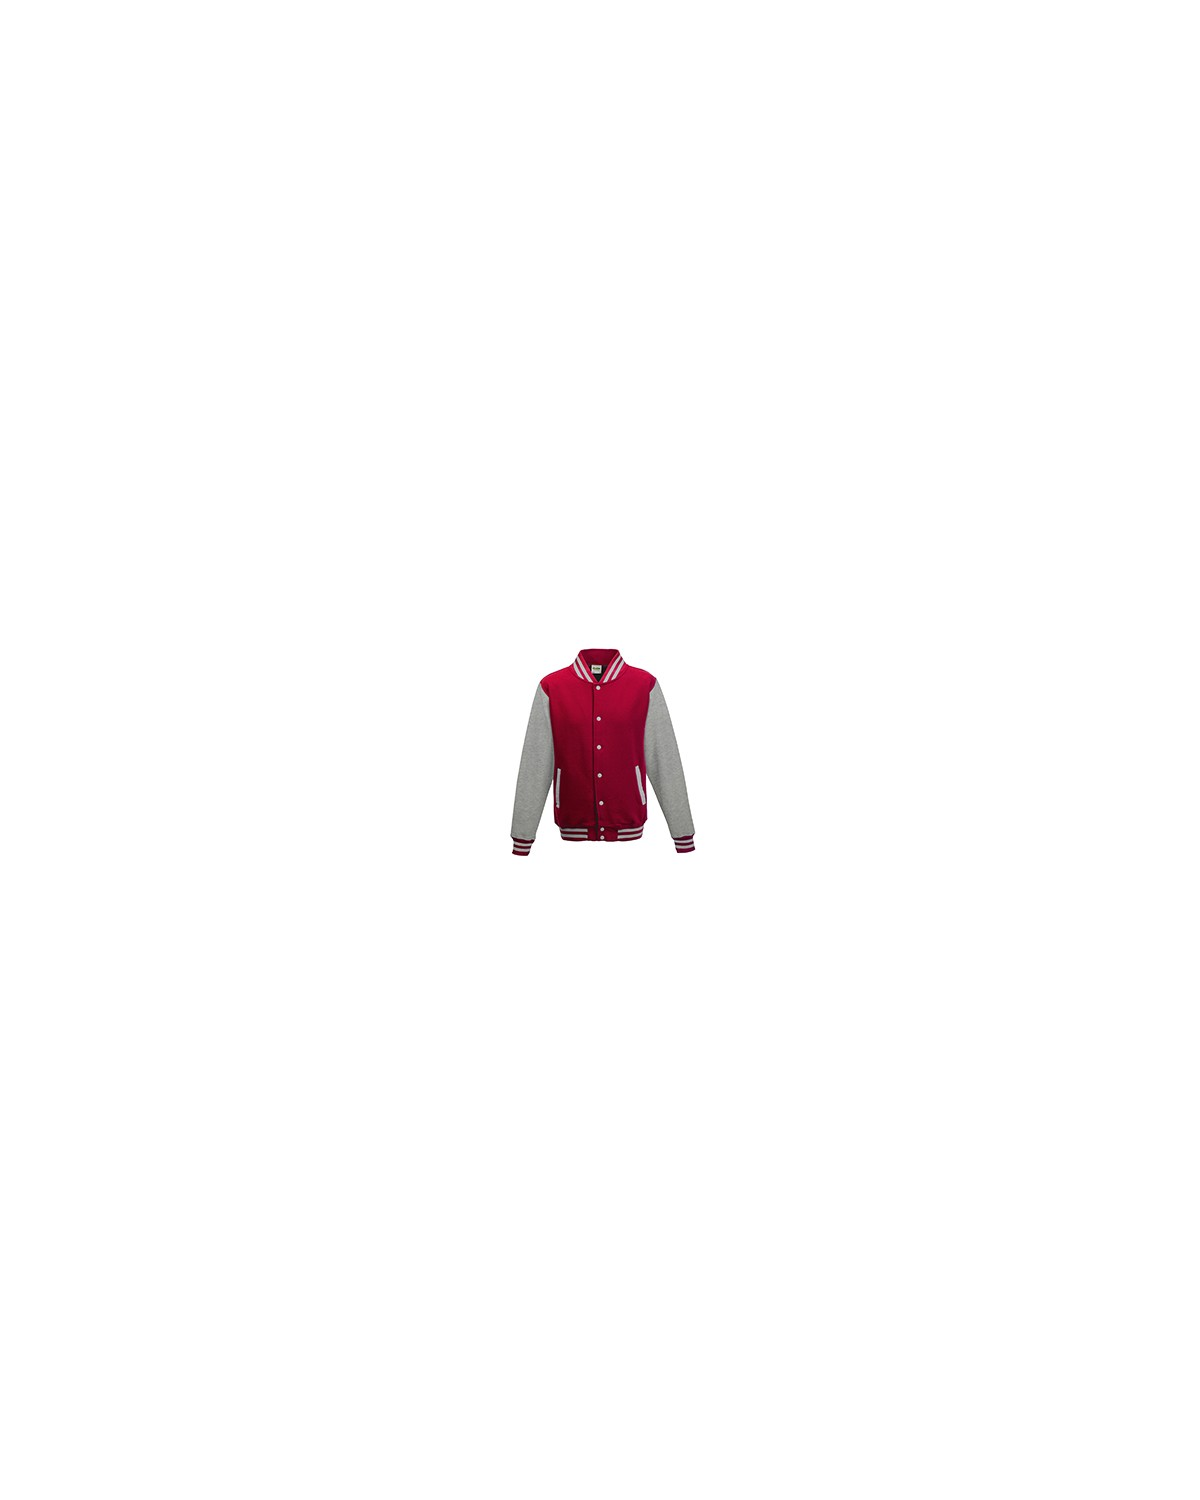 JHA043 Just Hoods By AWDis FIRE RD/ HTH GRY